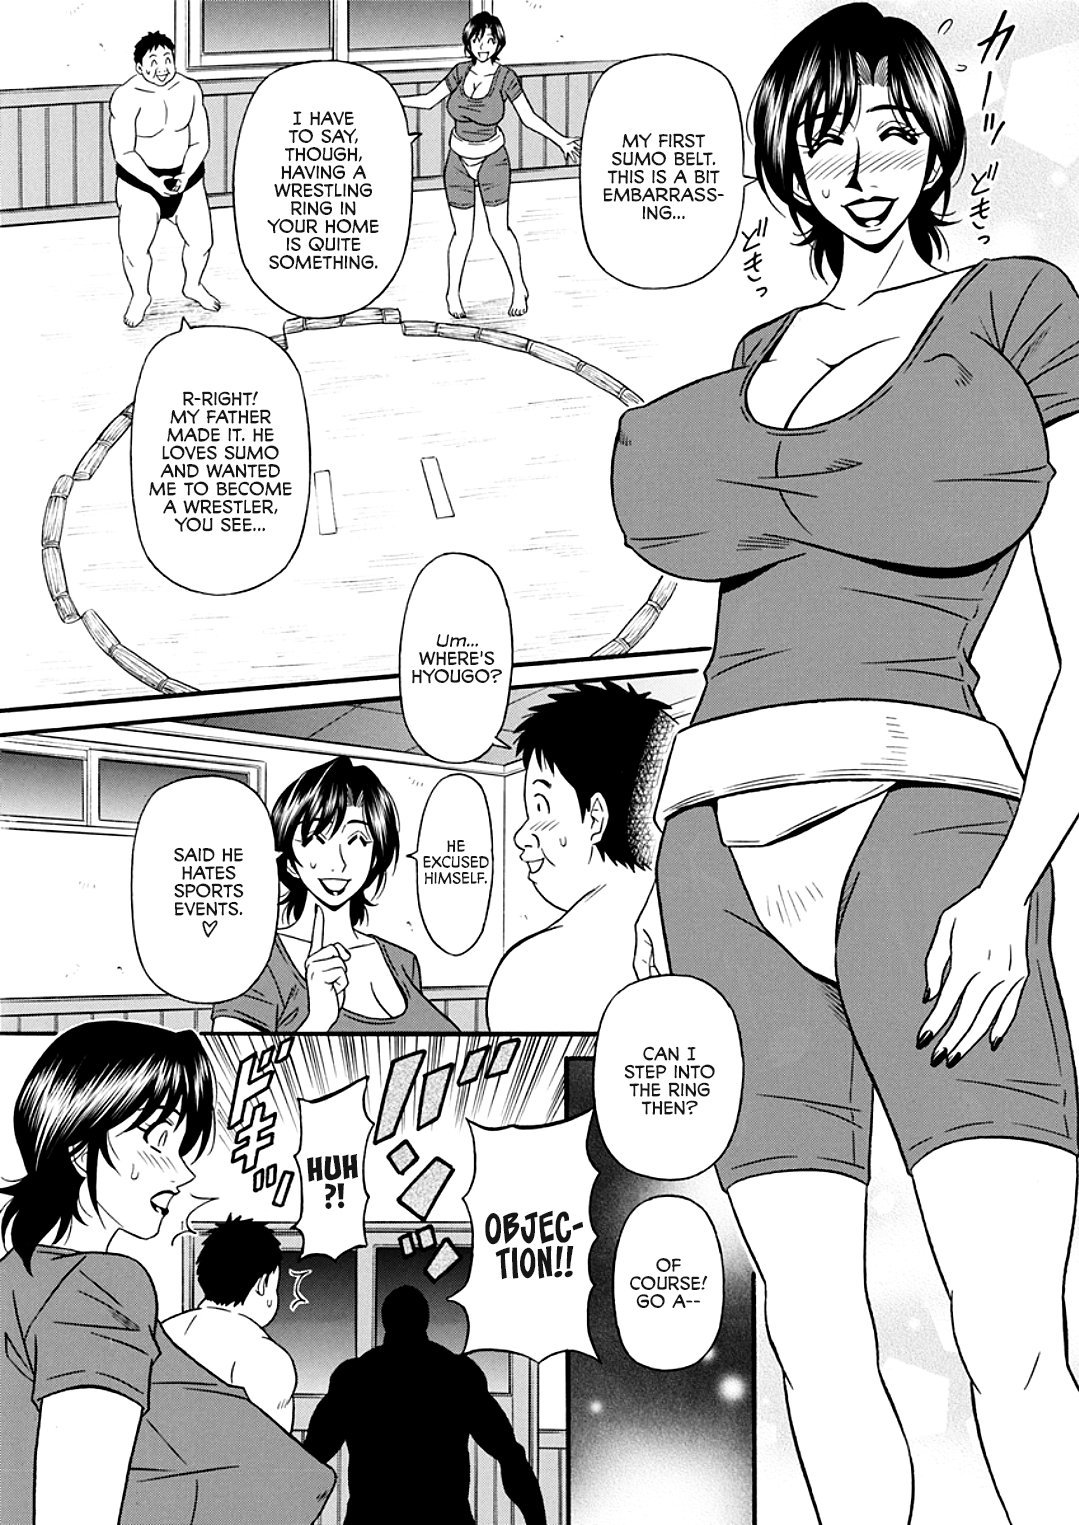 Hitoduma Shichou no H na Kaikaku | Married Major's Sexy Reform Ch. 1-4 page 25